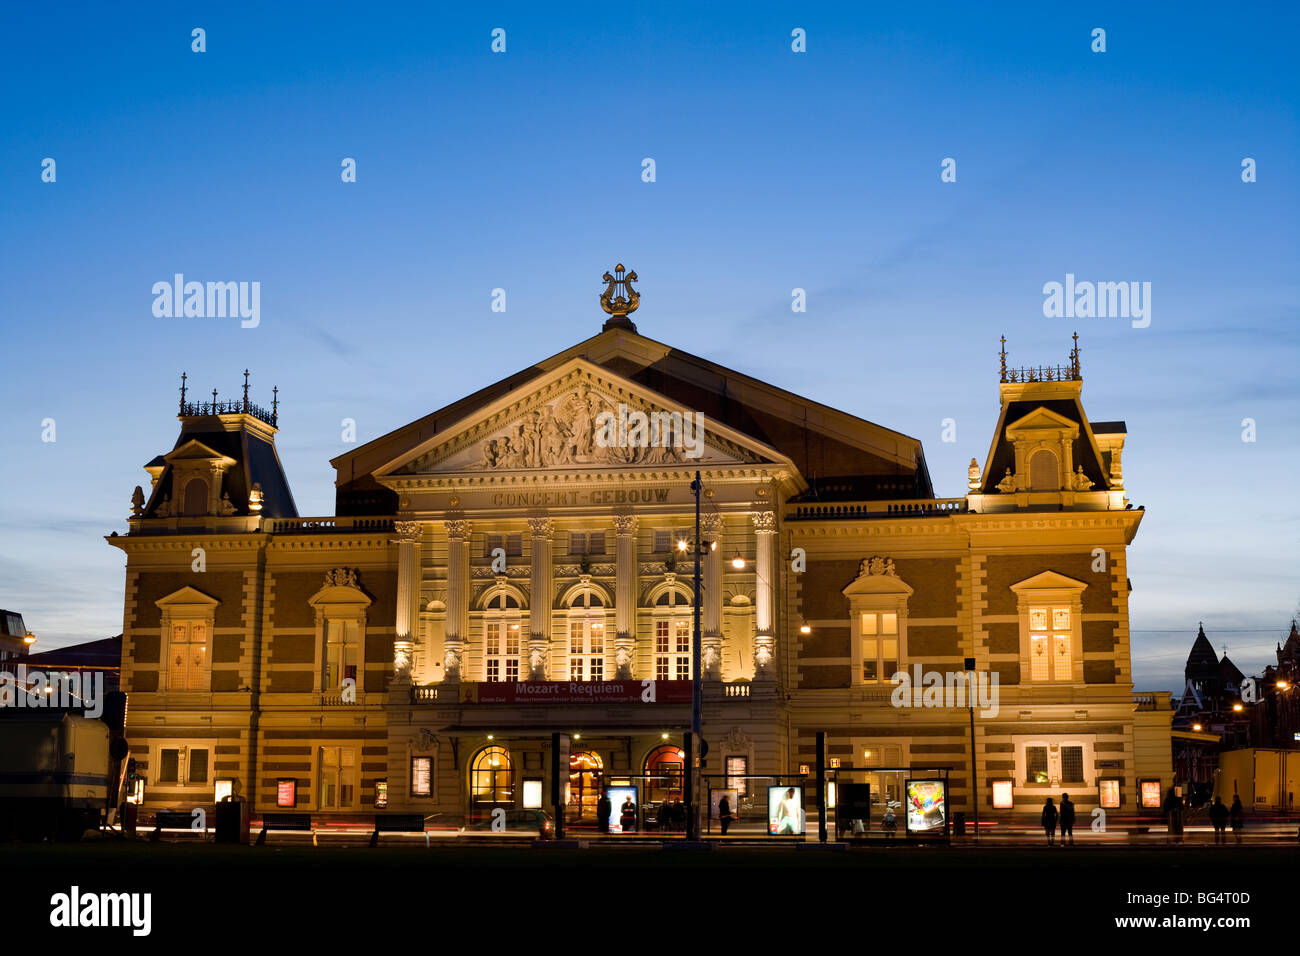 Amsterdam The Concertgebouw, Concert Gebouw, Music Hall building at dusk. - Stock Image